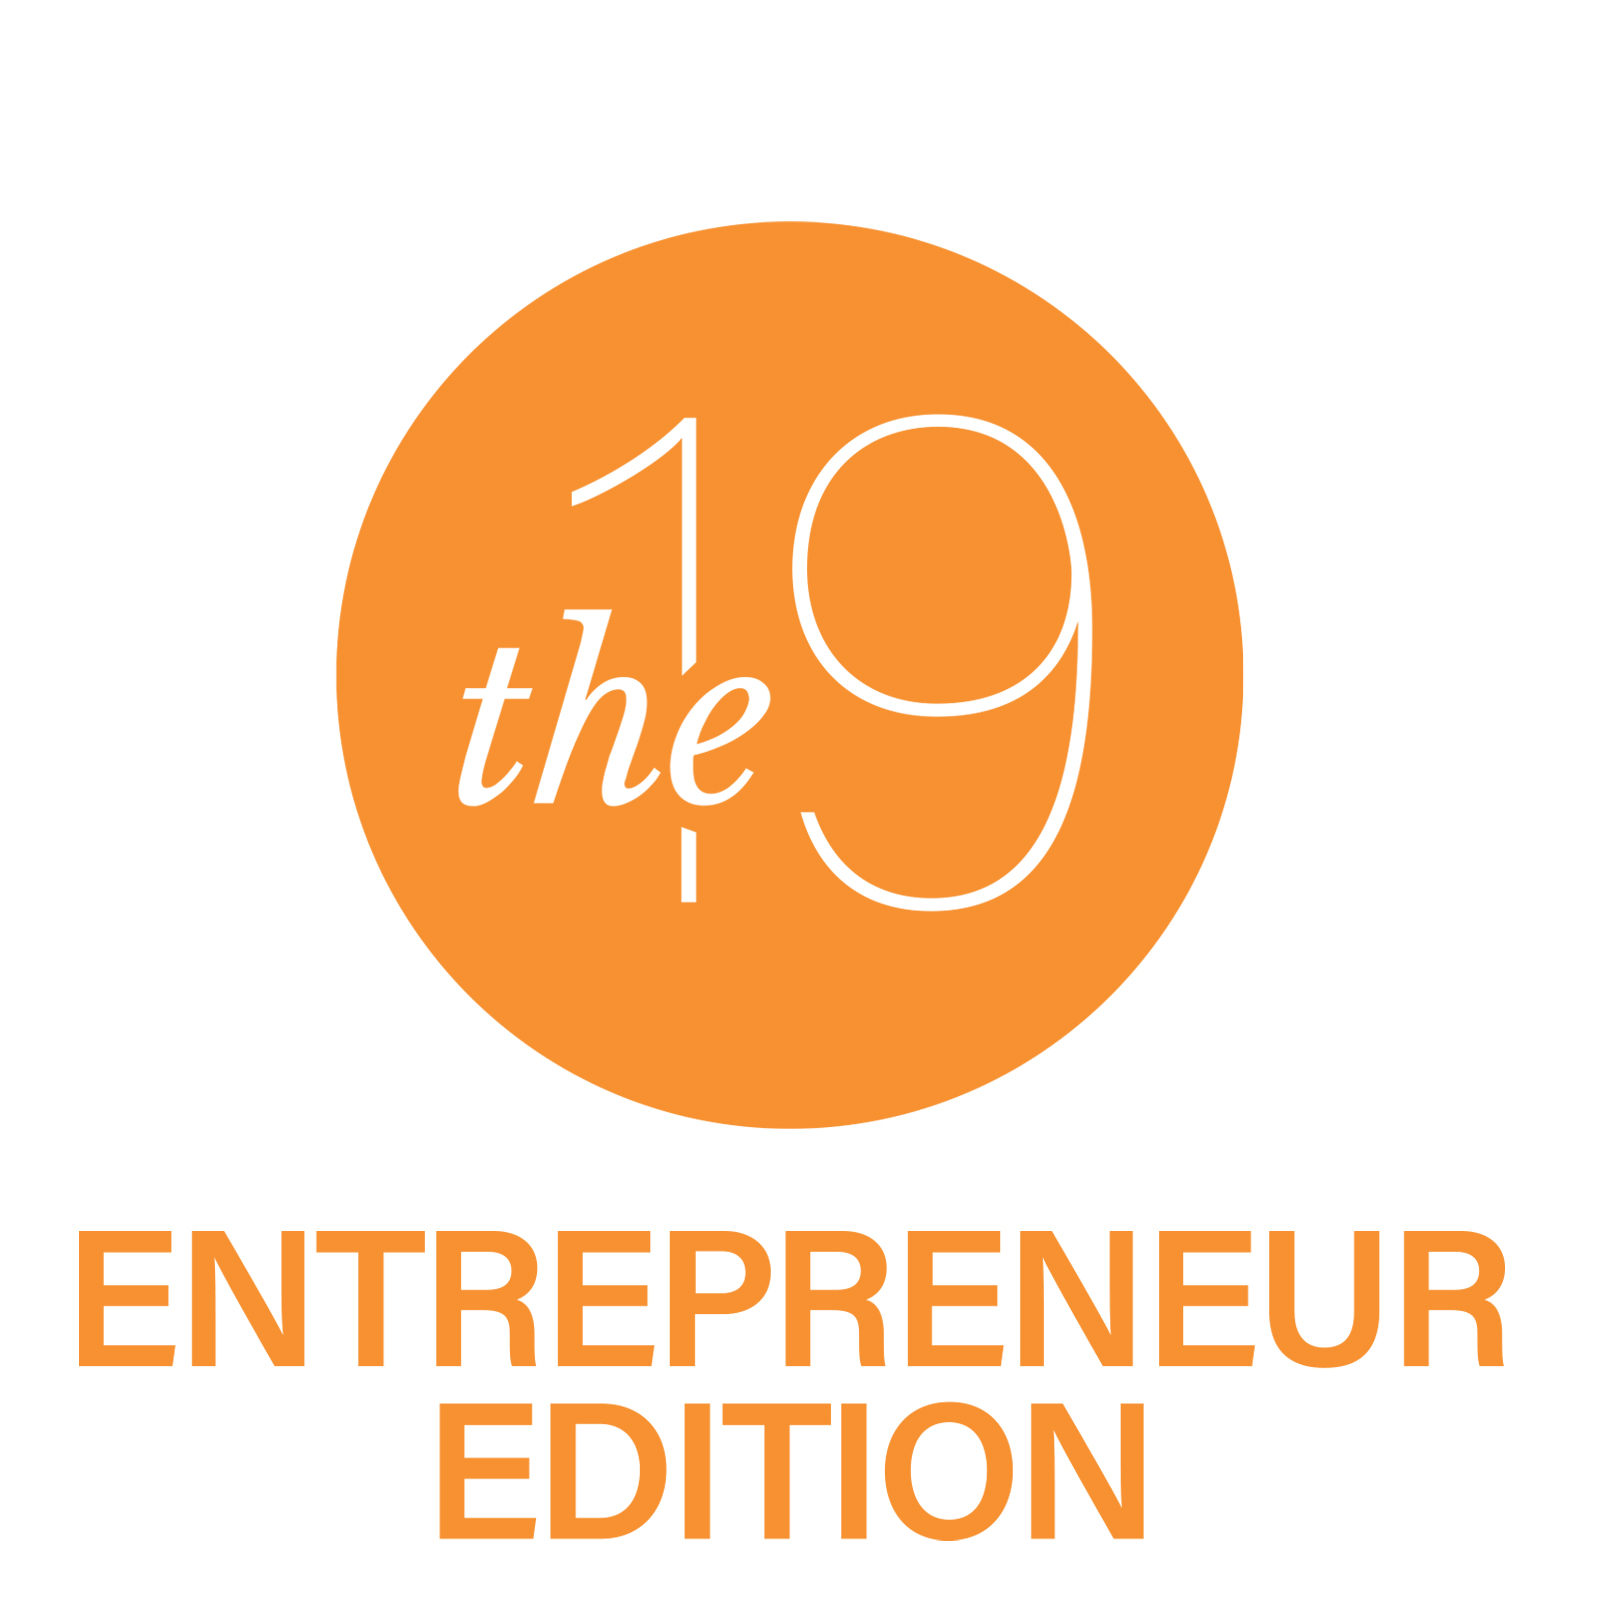 The 19 Entrepreneur Edition